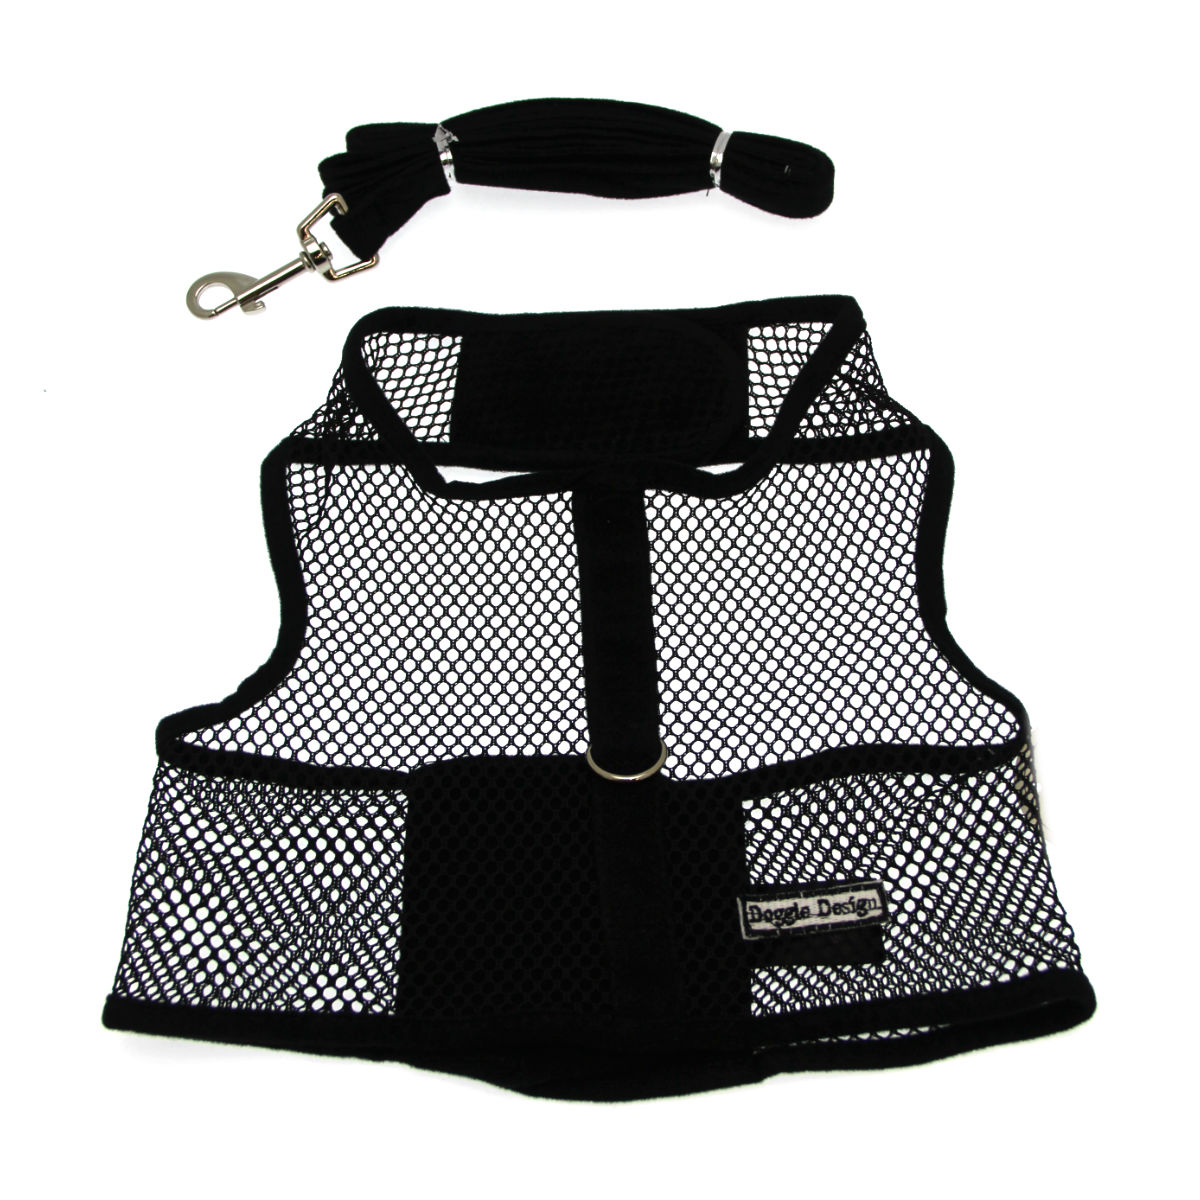 Netted Dog Harness with Leash - Black